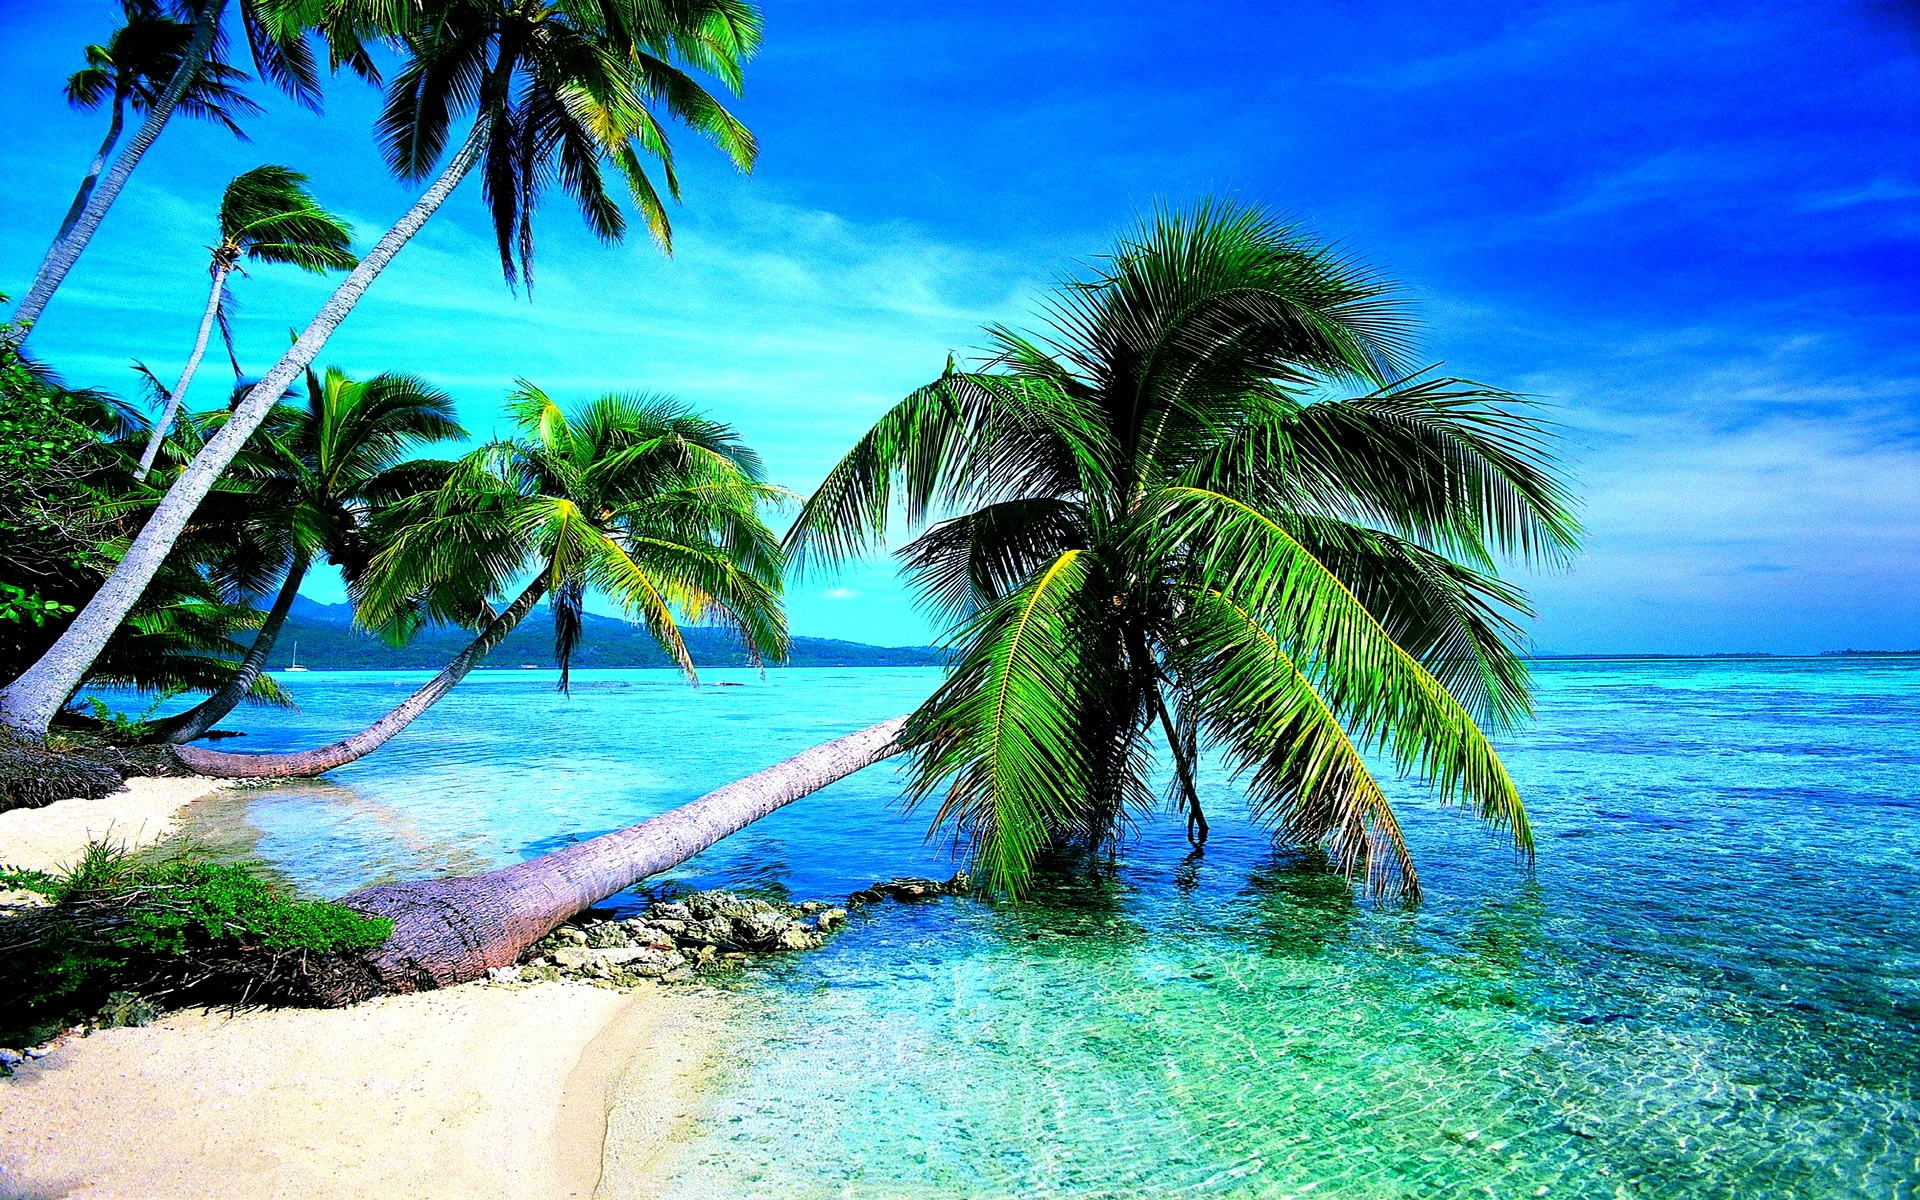 tropical beach hd image tropical beach hd wallpapers tropical beach 1920x1200